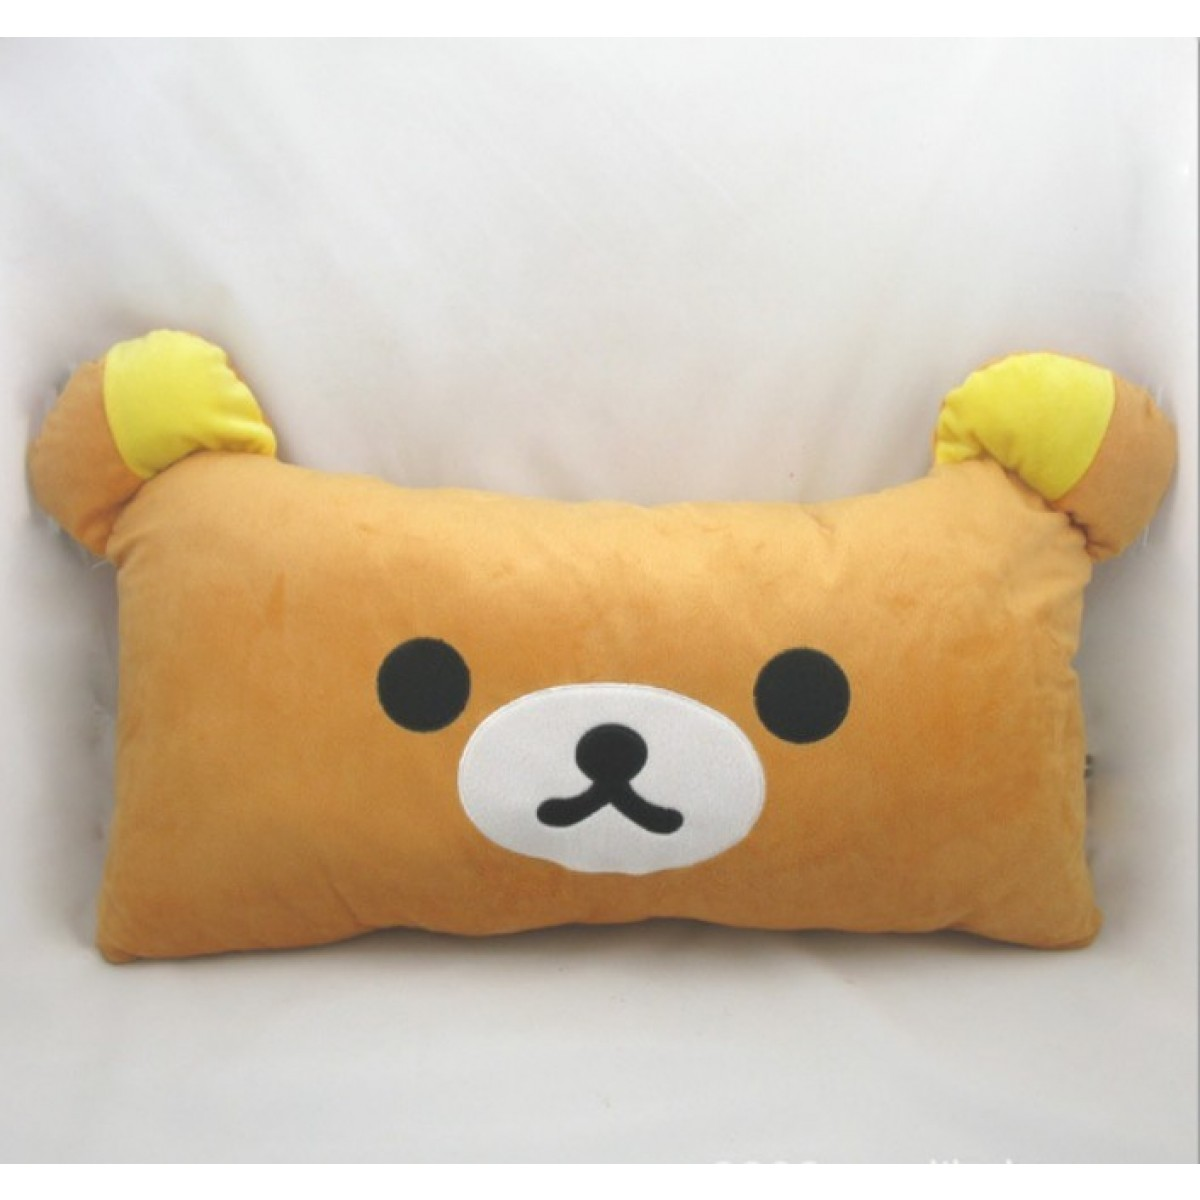 Pillows Online Sale Cheap Rilakkuma Plush Pillow Sale Online With Free